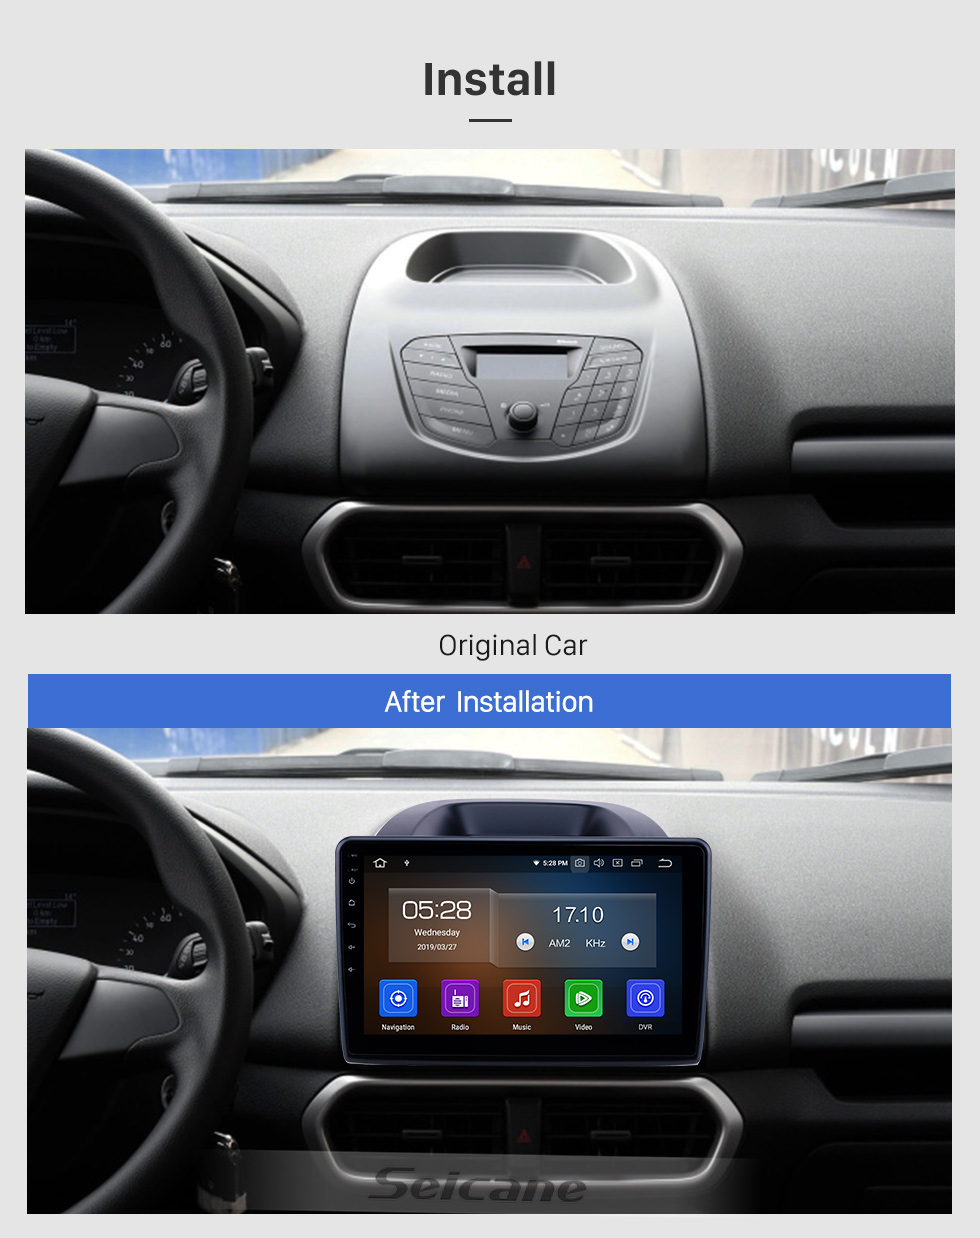 Seicane 10.1 inch Android 9.0 GPS Navigation Radio for 2018-2019 Ford Ecosport Bluetooth HD Touchscreen Carplay support DVR SWC